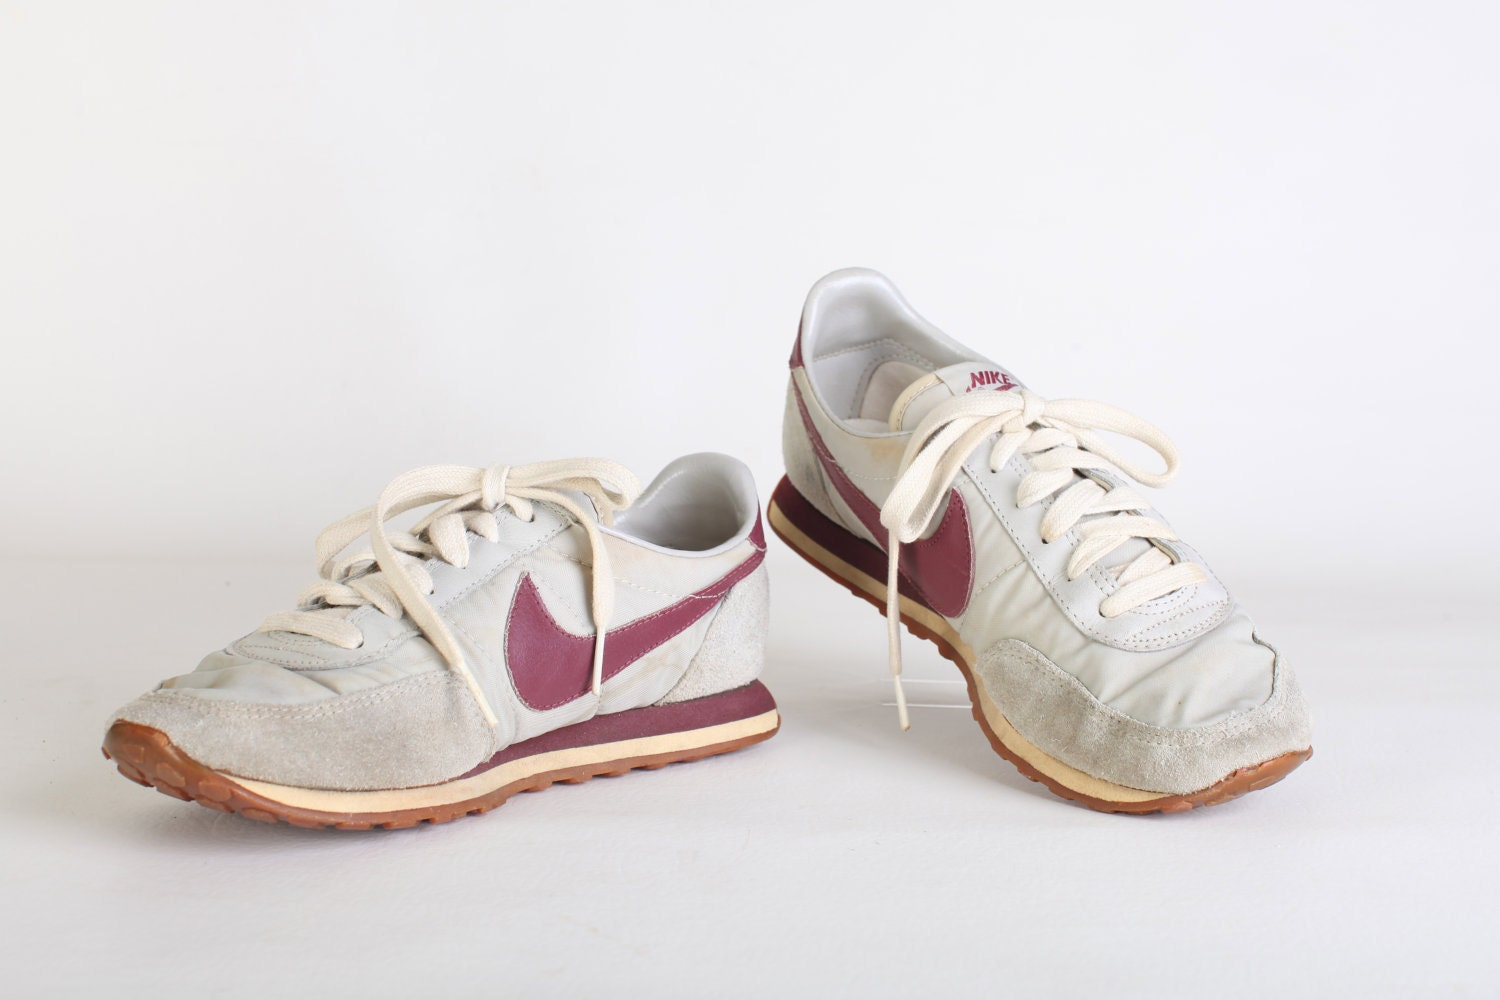 size 8 5 s grey and maroon nike tennis by